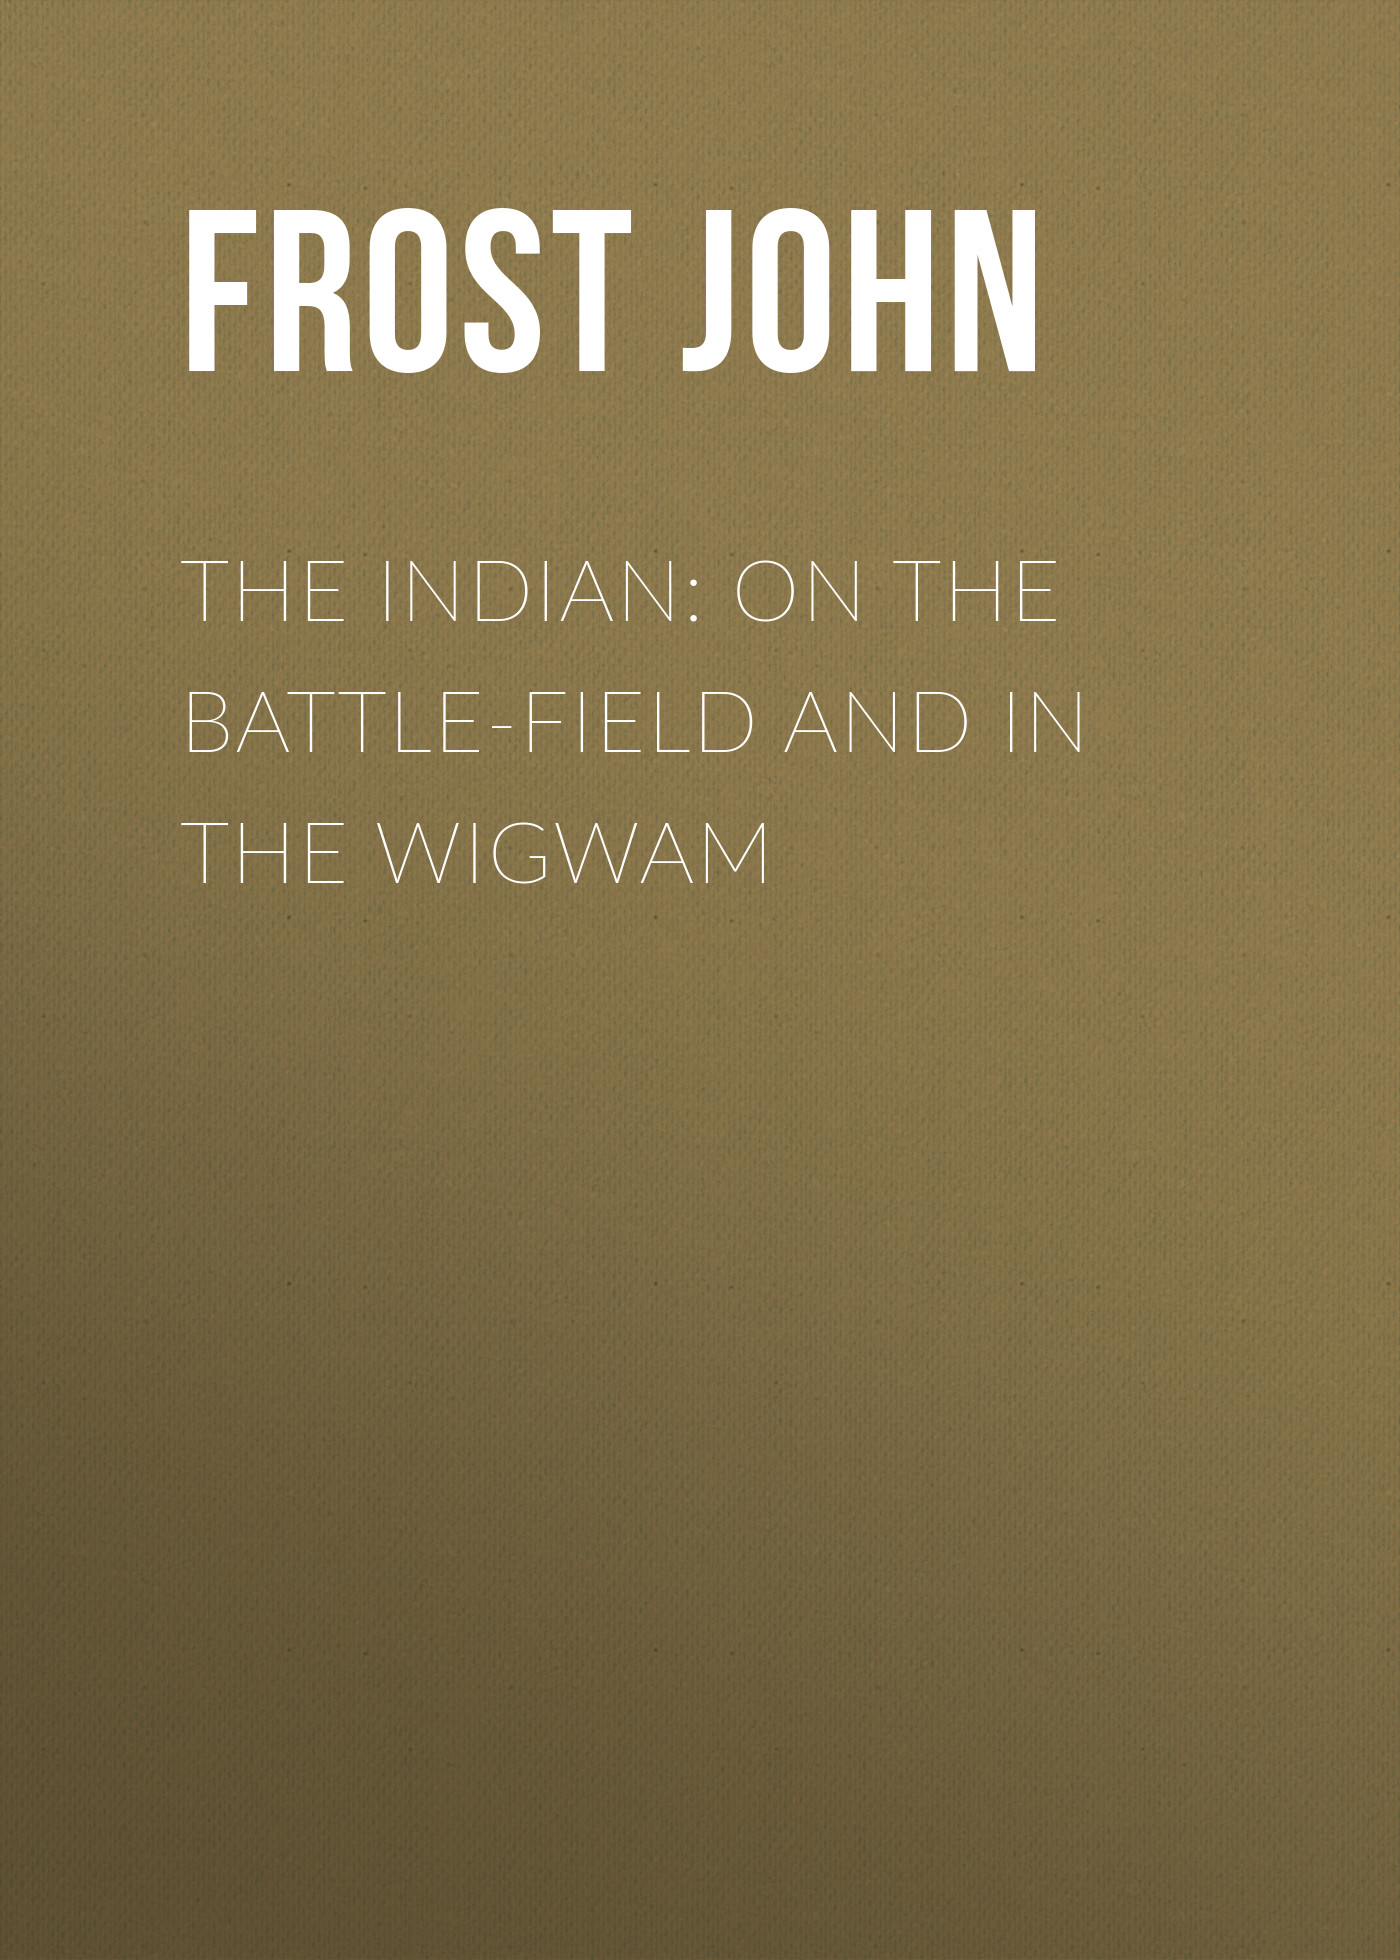 Frost John The Indian: On the Battle-Field and in the Wigwam cricket training in indian universities